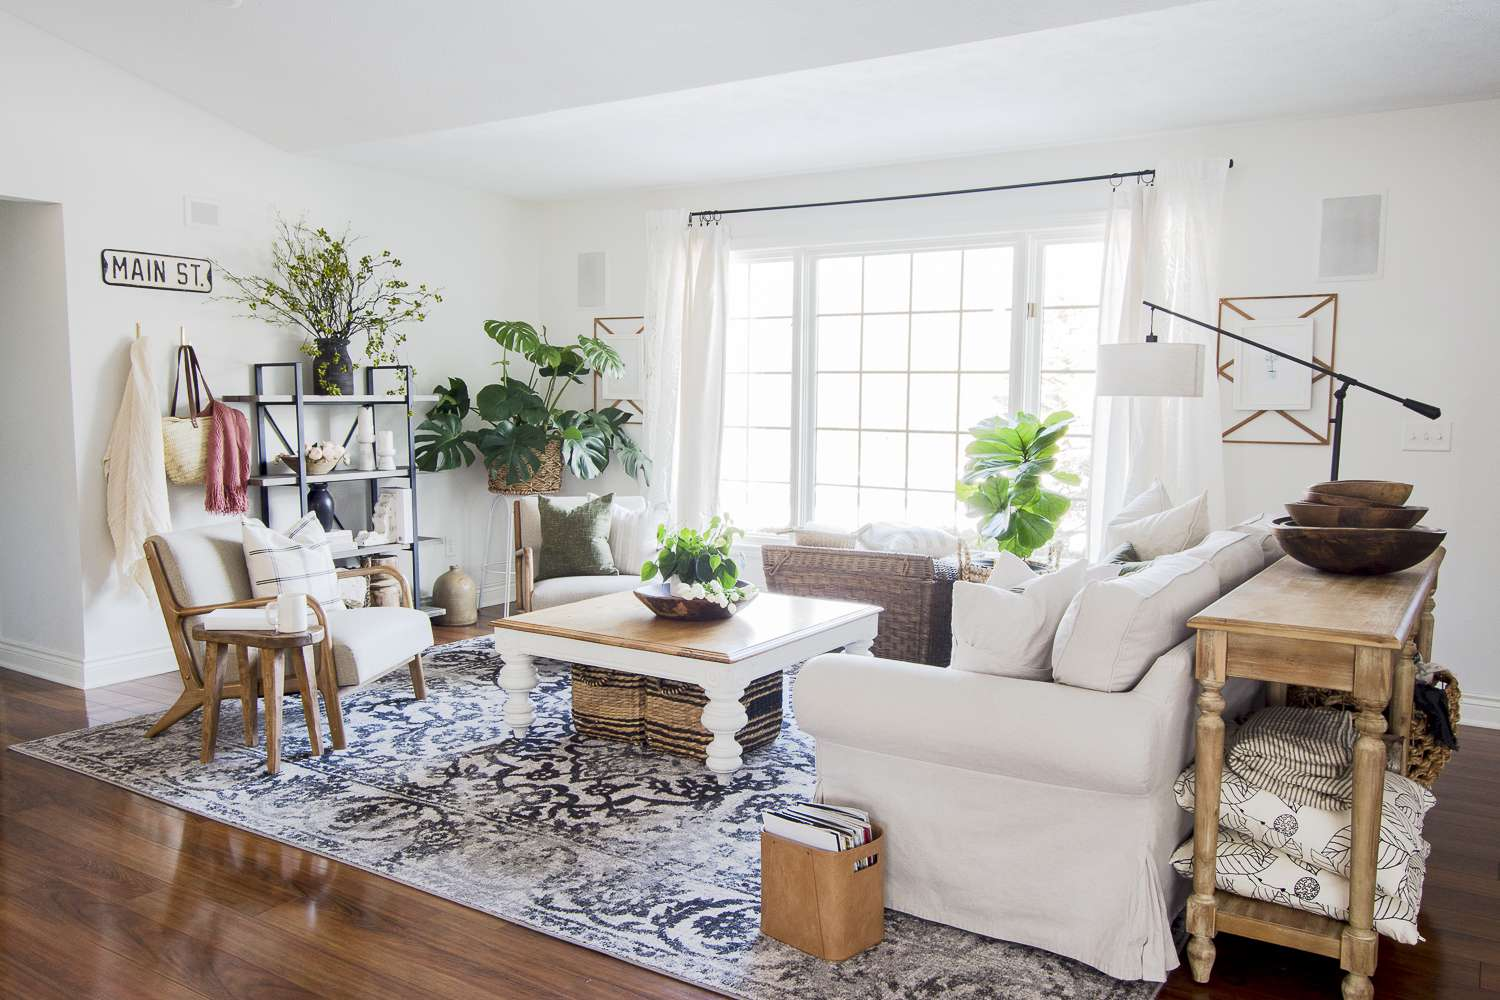 Spring decor ideas for modern farmhouse living.